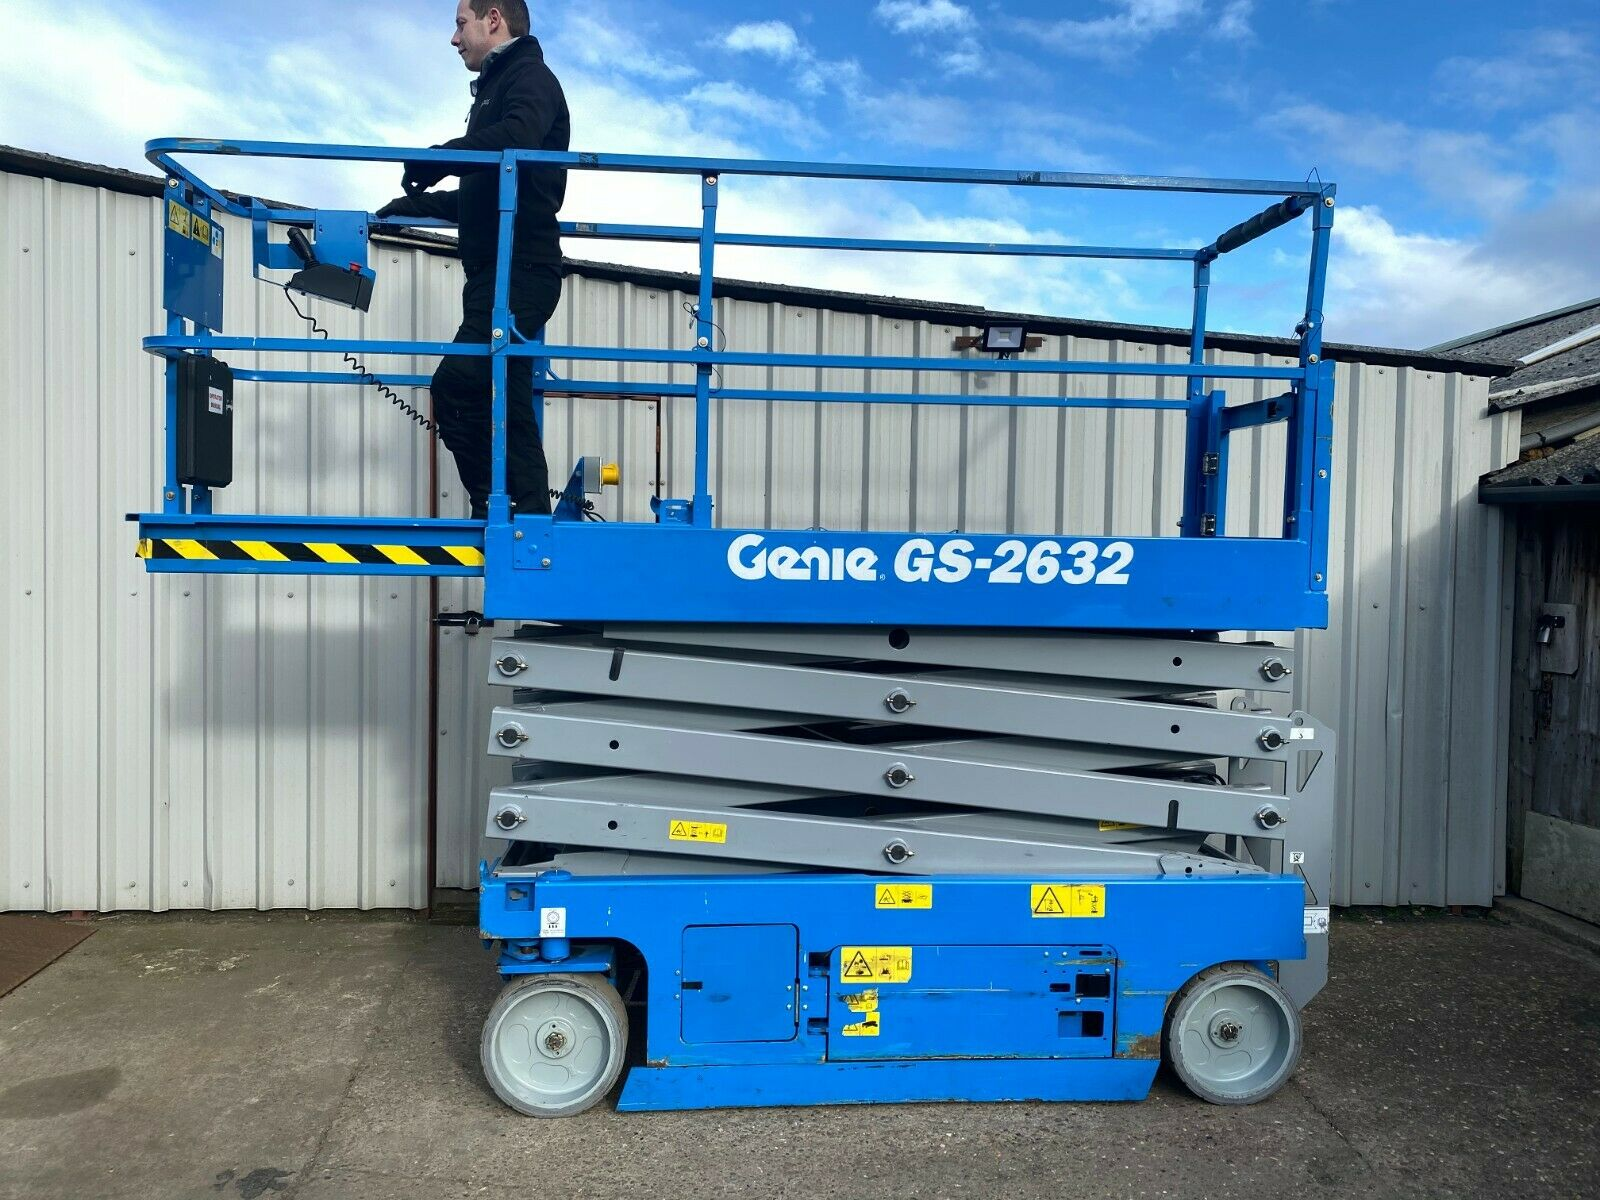 GENIE GS-2632 ACCESS PLATFORM SCISSOR LIFT, YEAR 2014 *PLUS VAT*